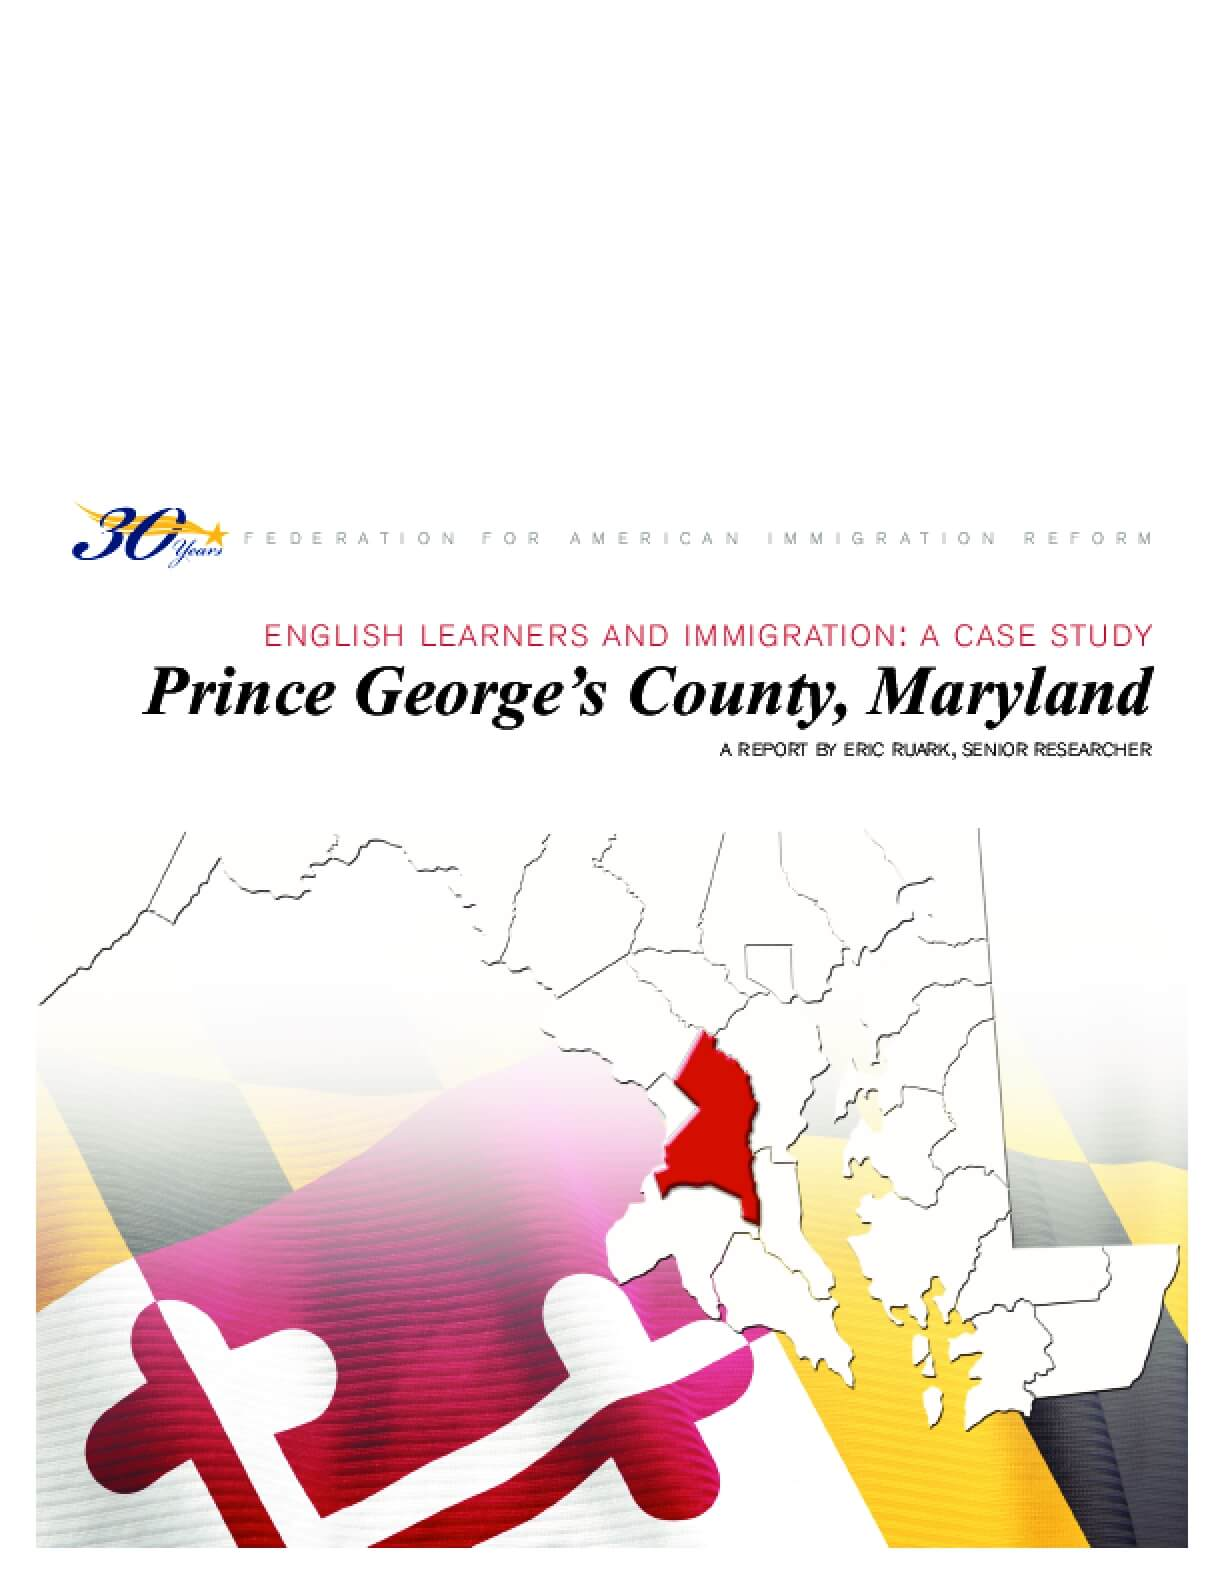 English Learners and Immigration: A Case Study of Prince George's County, Maryland